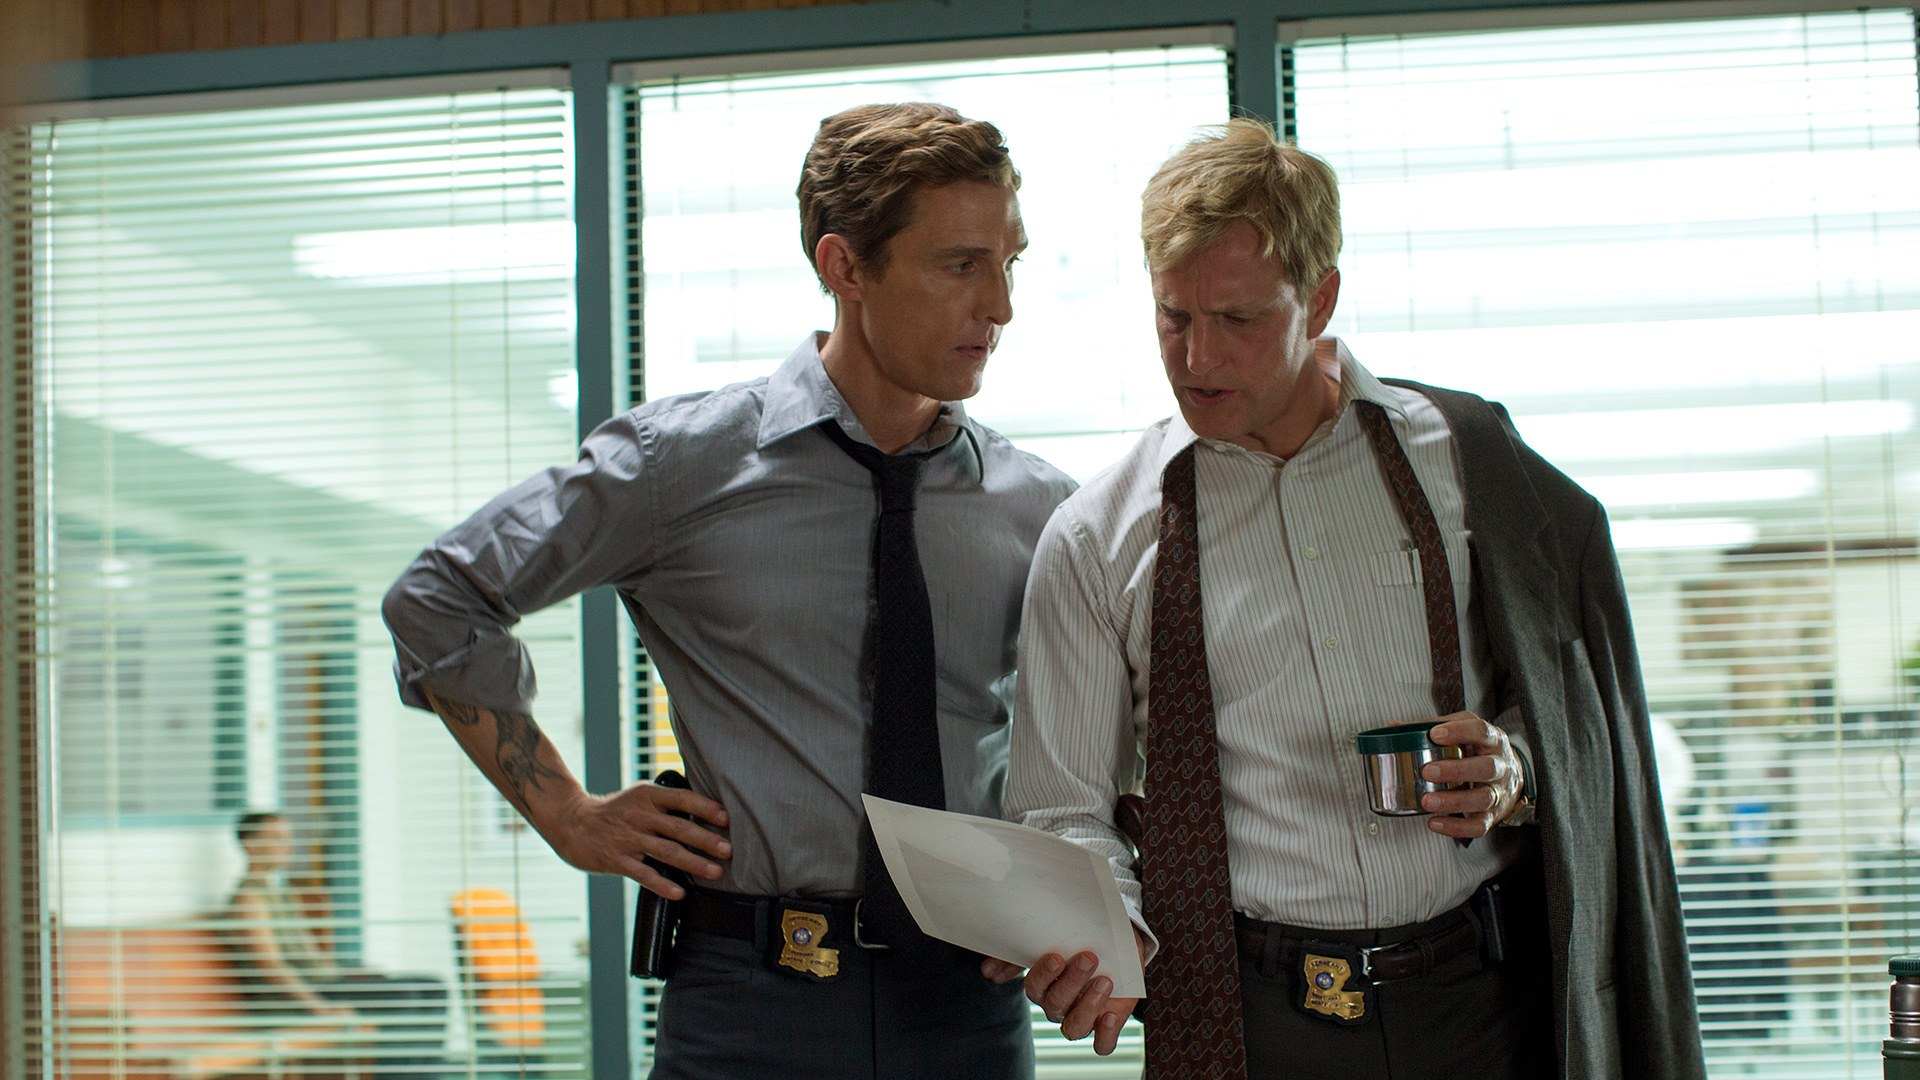 Matthew McConaughey and Woody Harrelson in True Detective Season 1 in an office wearing ties